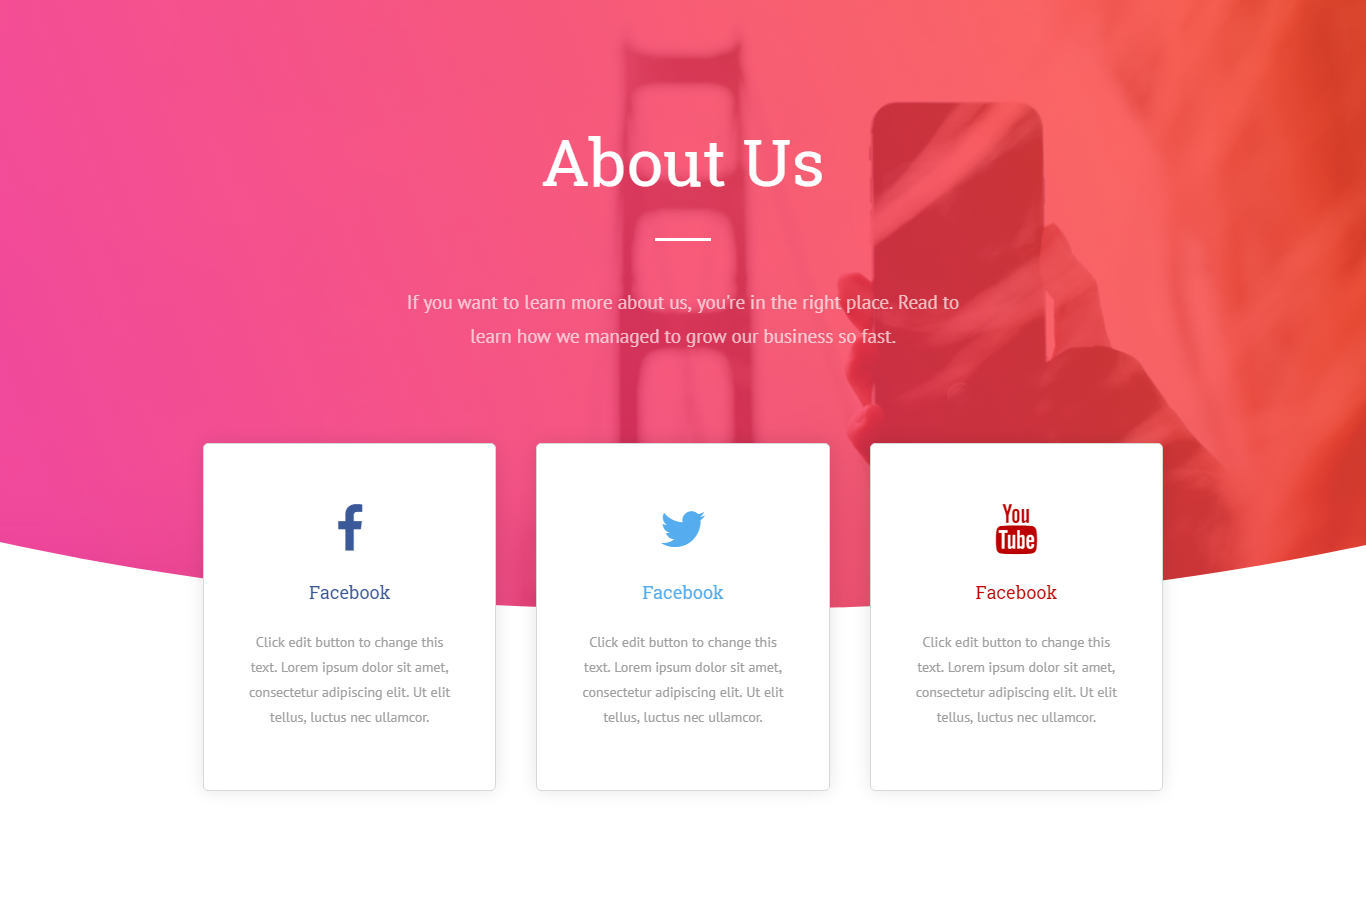 V5 – Hero Image About Us with Social Media Contact – TYLER